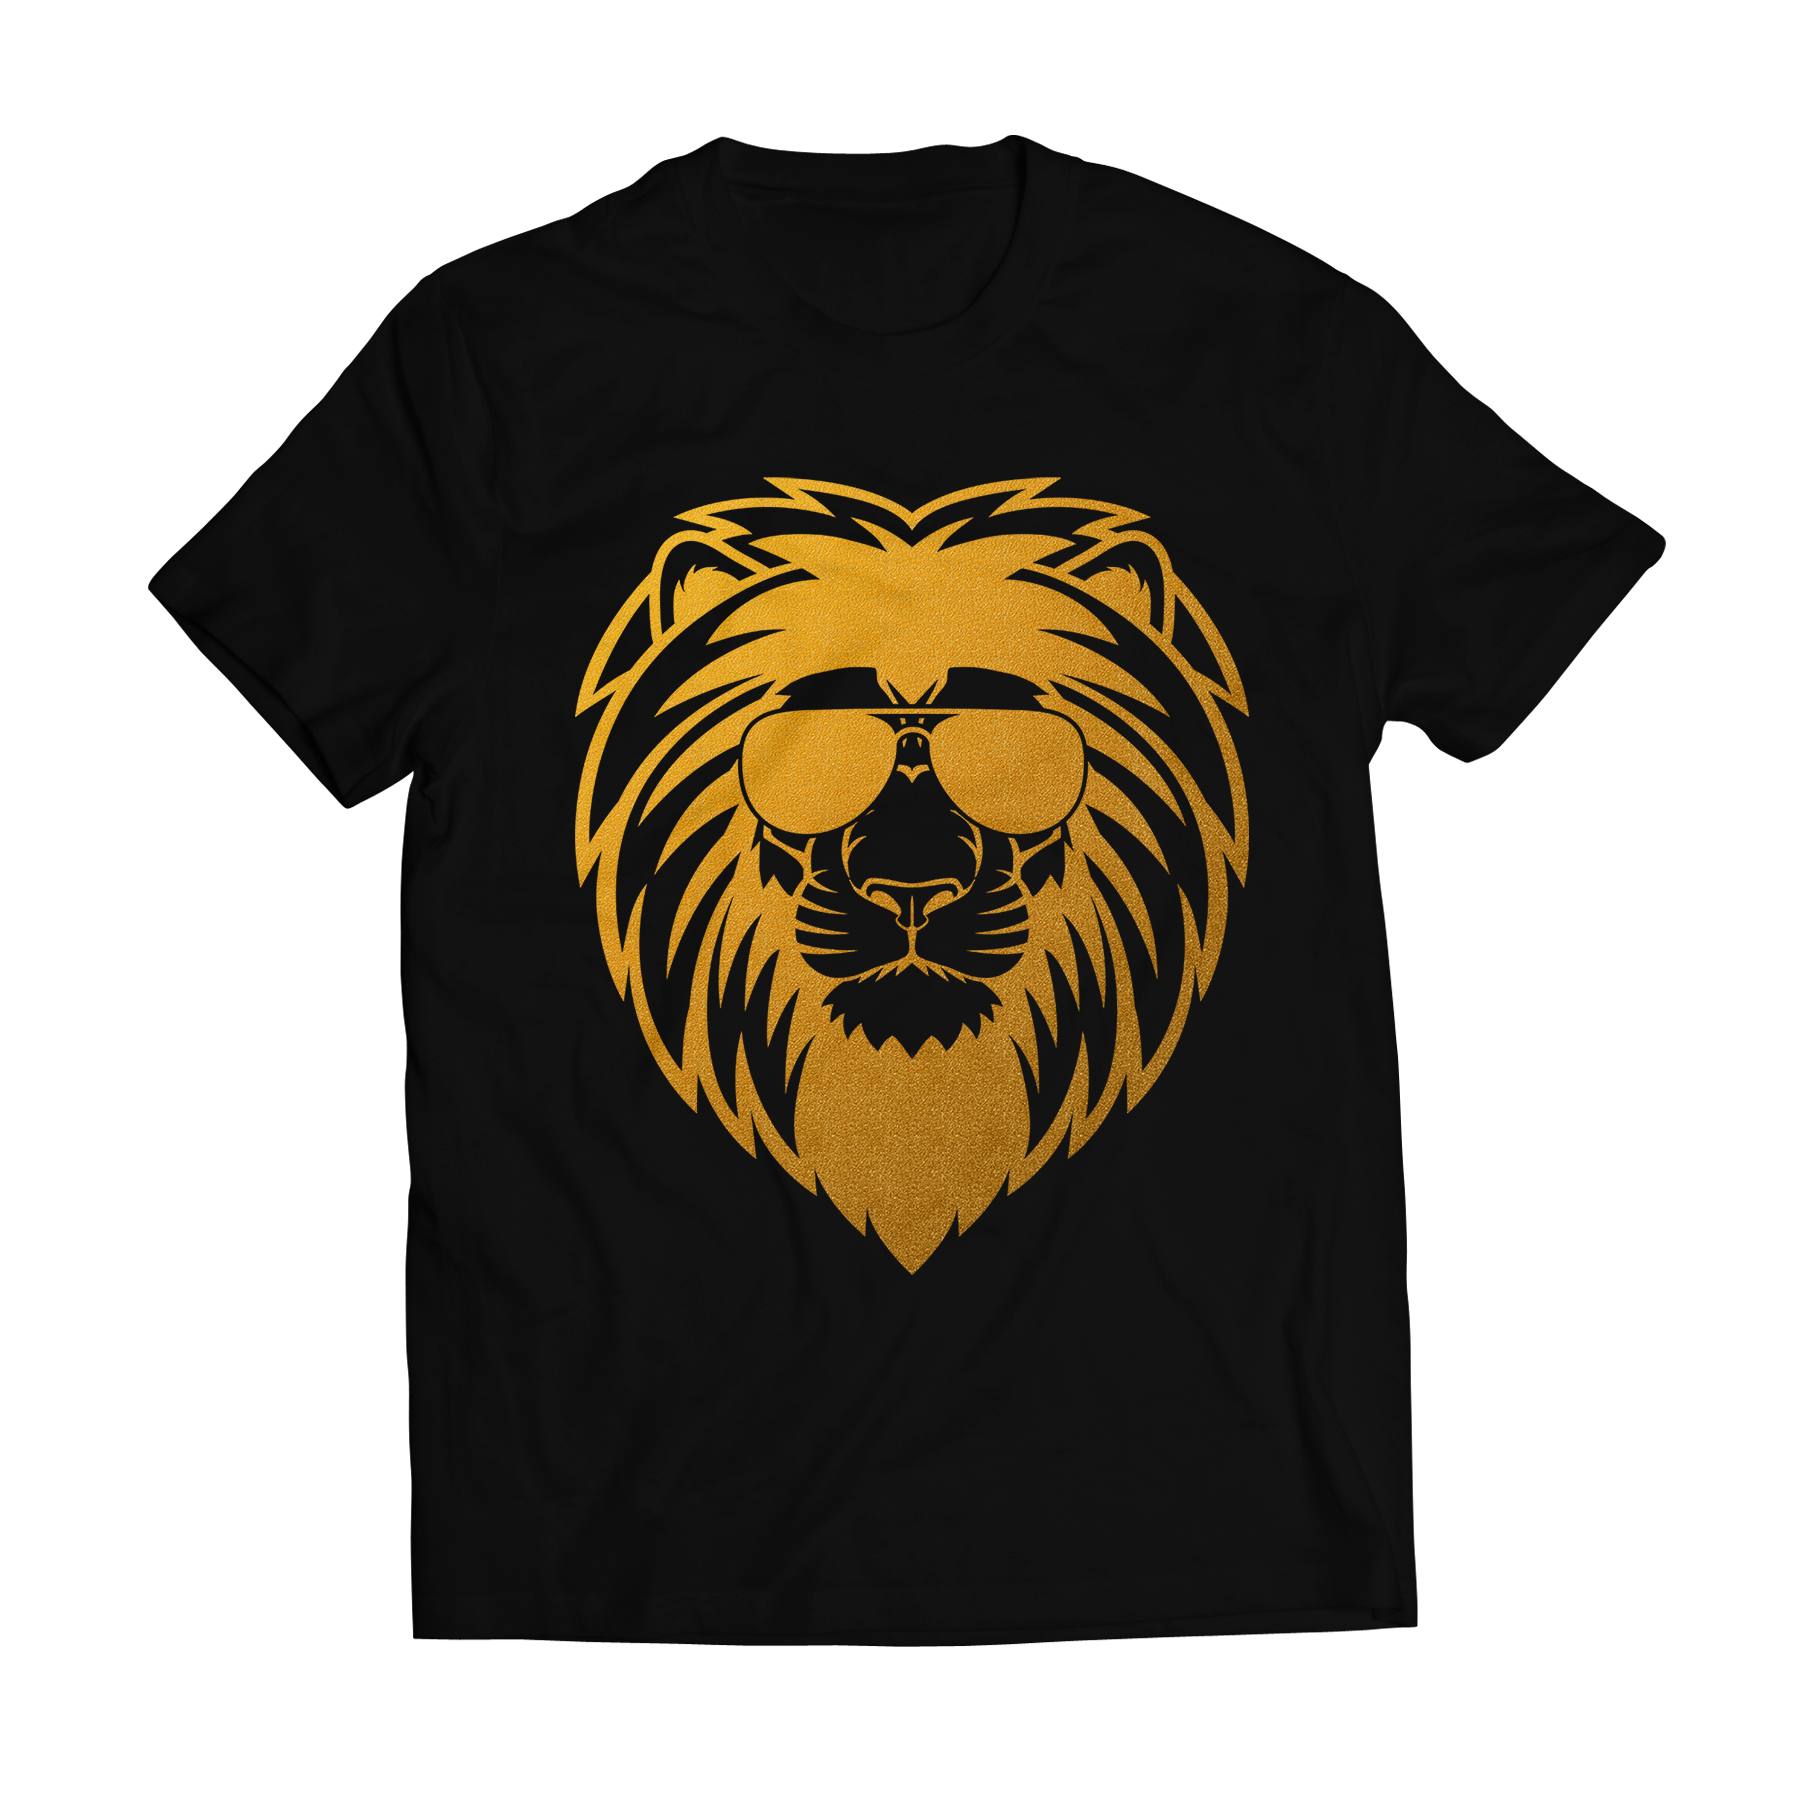 Big bang apparel lion s face gold foil t shirt big bang for T shirt designing and printing